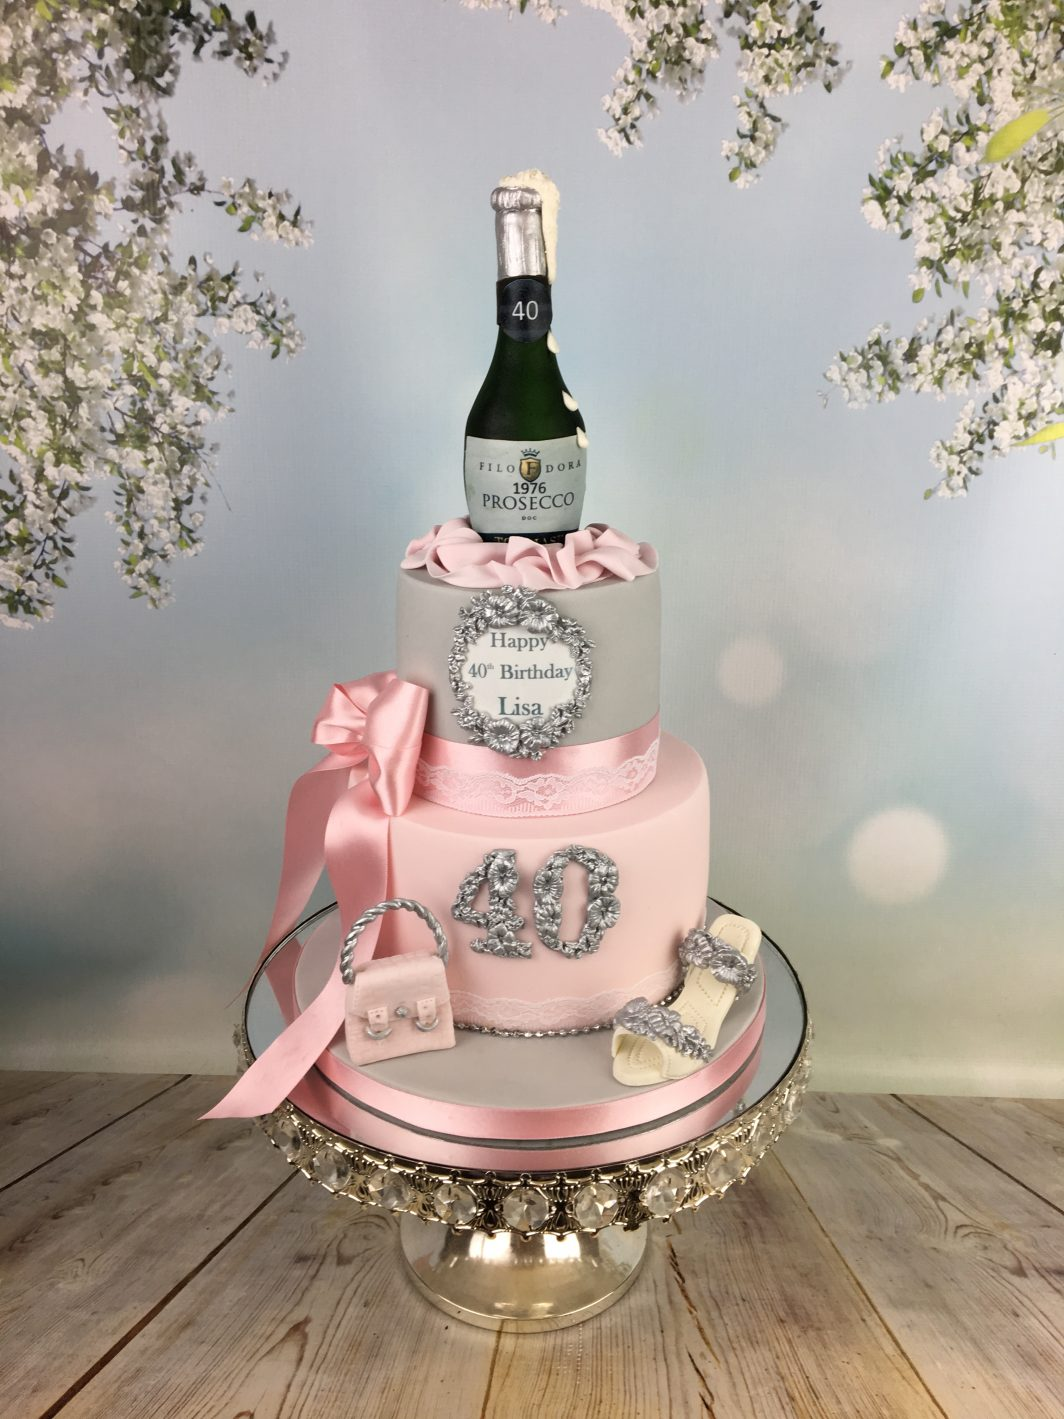 Pink and silver cake